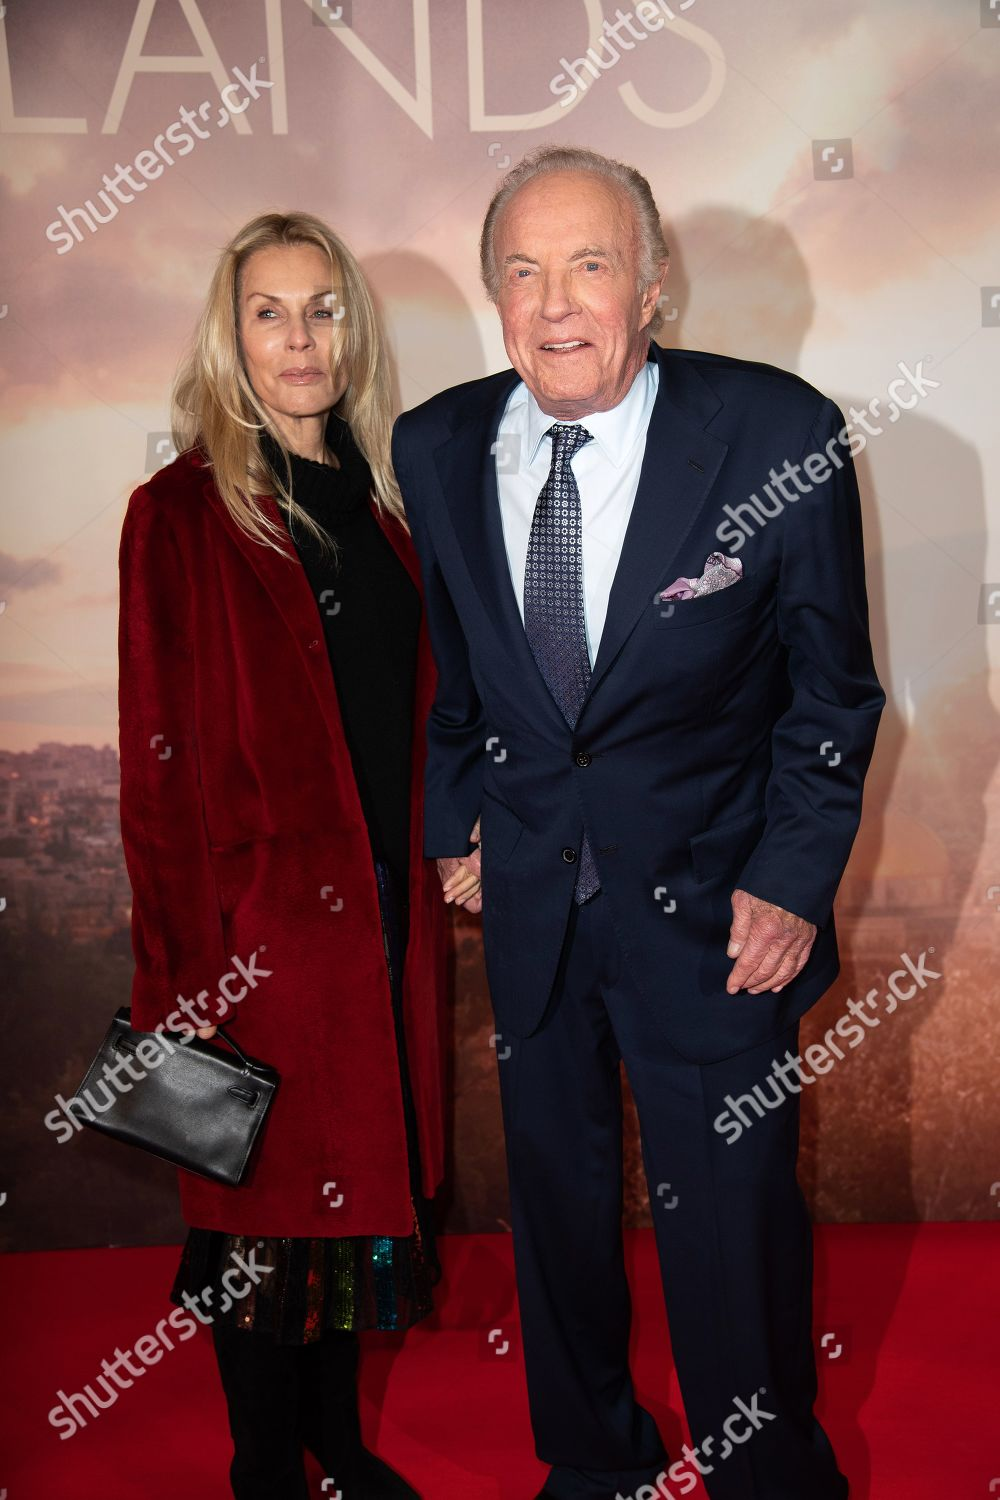 holy-lands-film-premiere-paris-france-stock-image-by-pierre-villard-for-editorial-use-dec-4-2018